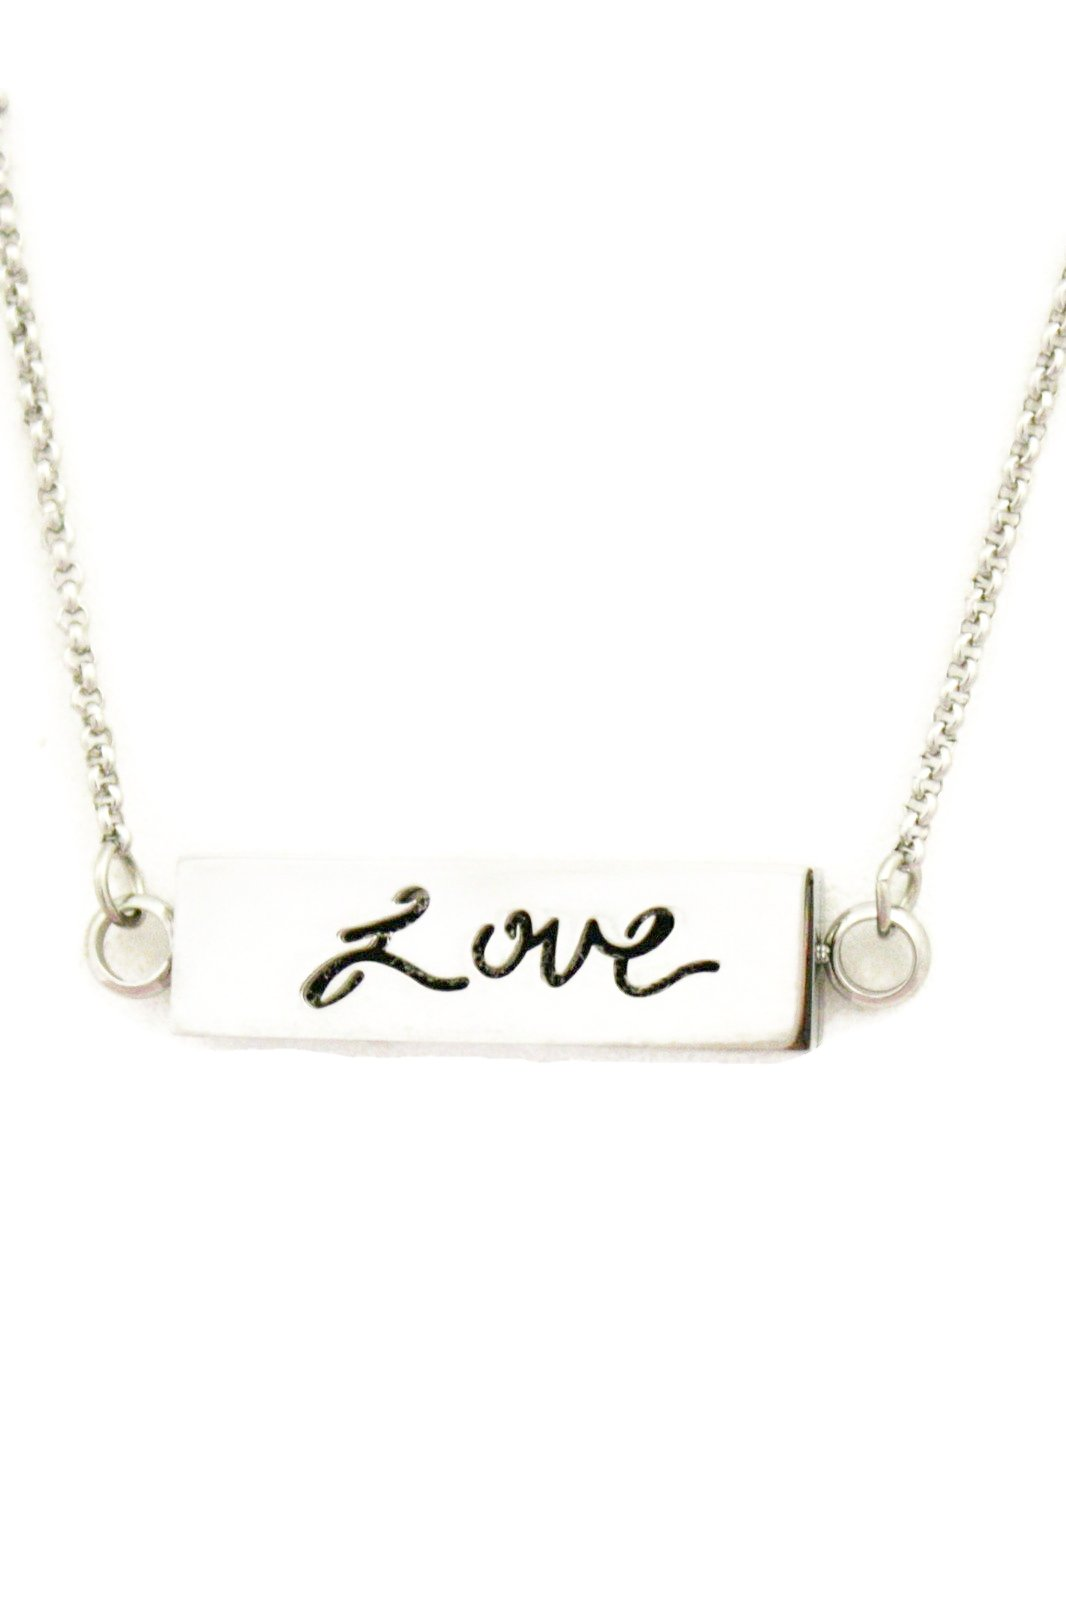 "Love Essential Oil Diffuser Stainless Steel Bar Necklace- 22-24""-Diffuser Necklace-Destination Oils"